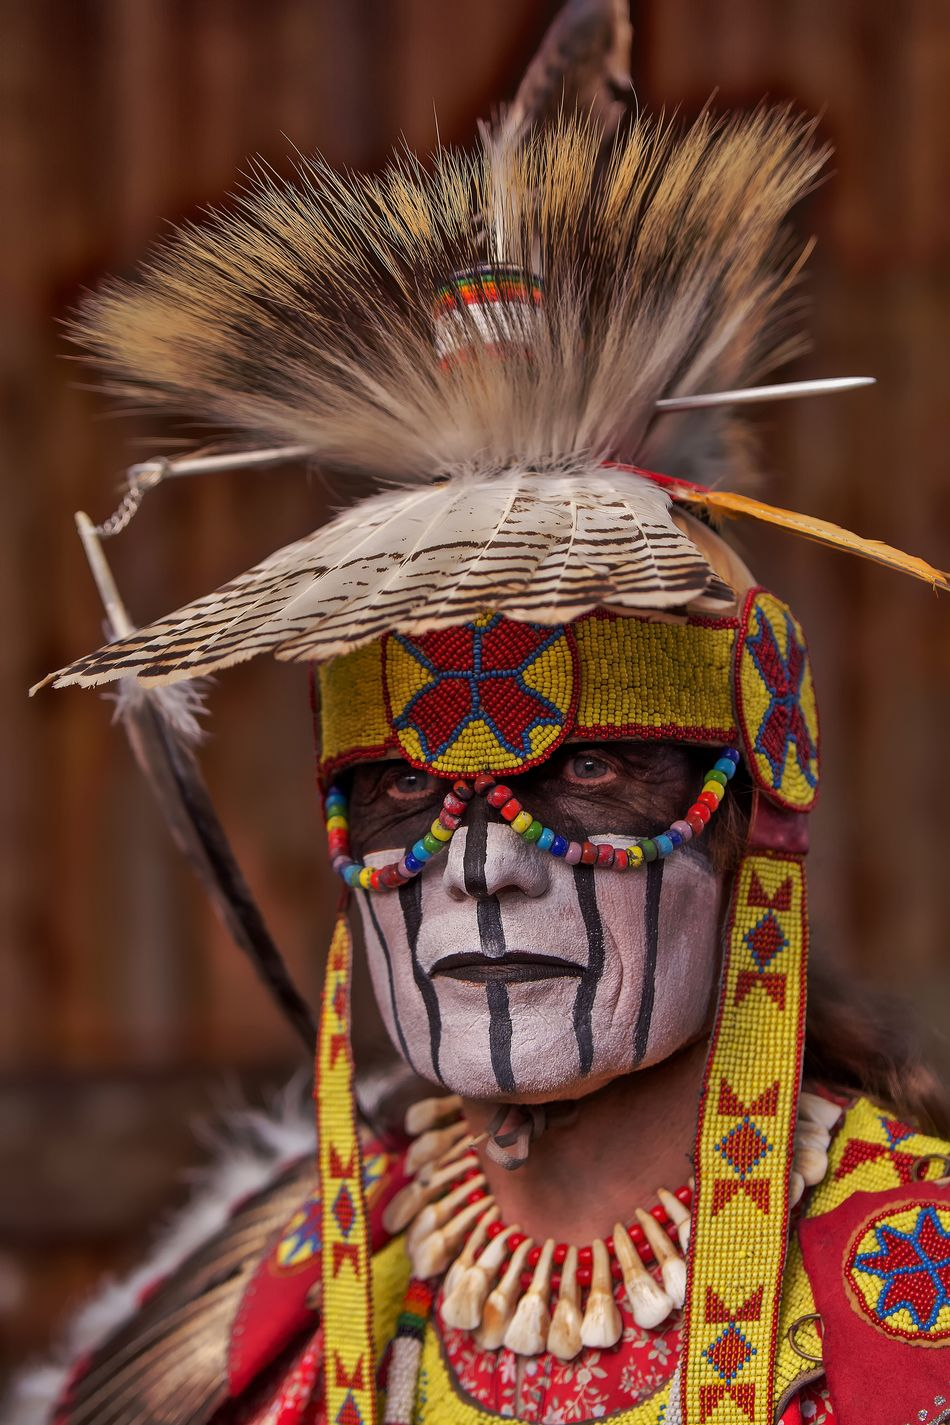 Beautiful stock photos of native american, traditional clothing, arts culture and entertainment, close-up, tradition